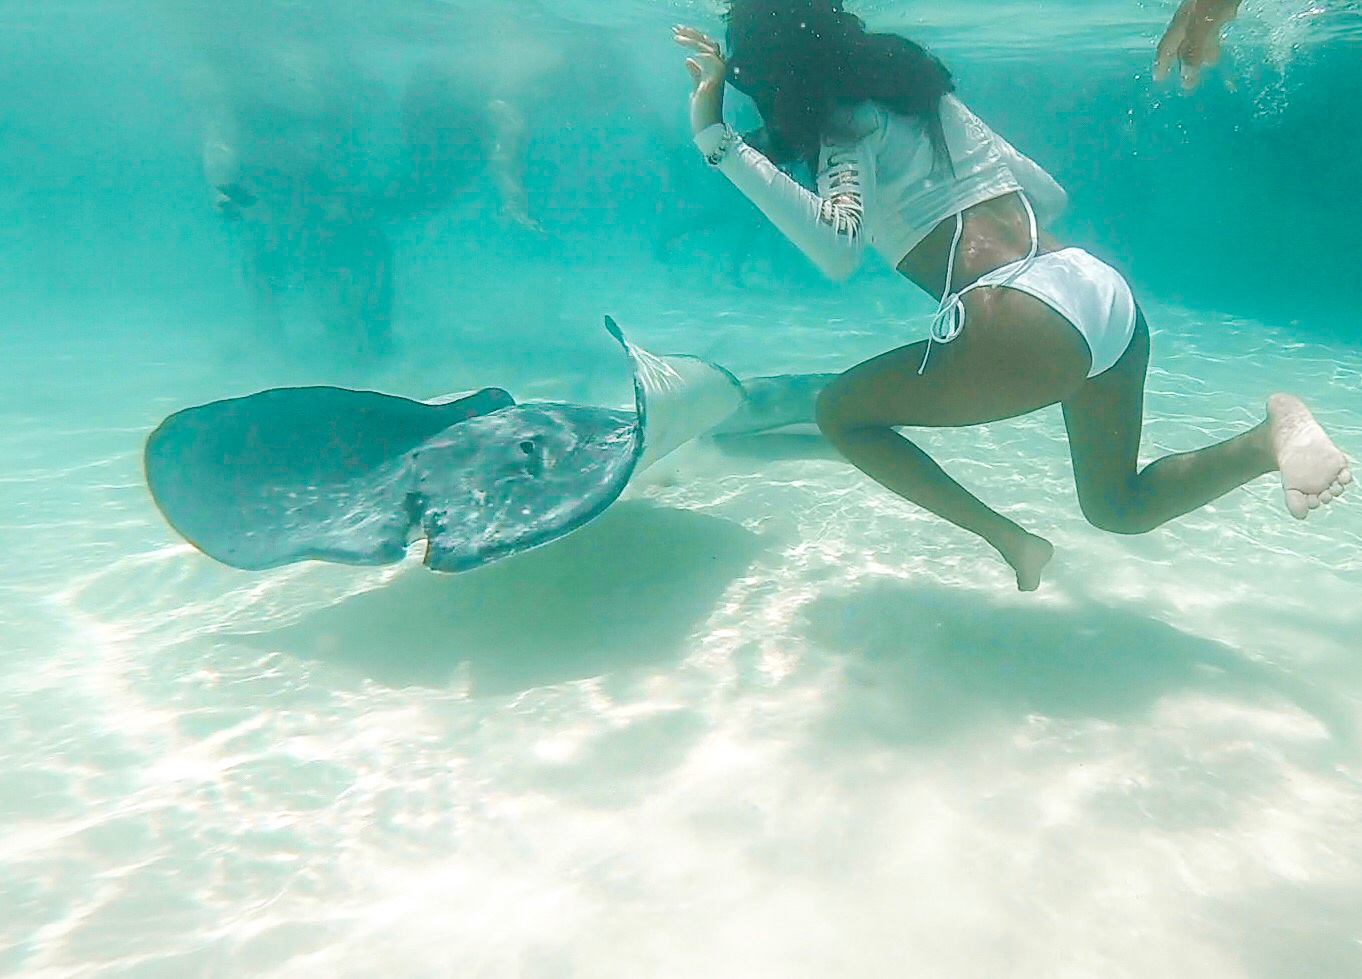 Stingray city, Grand Cayman Islands, cleat Caribbean water